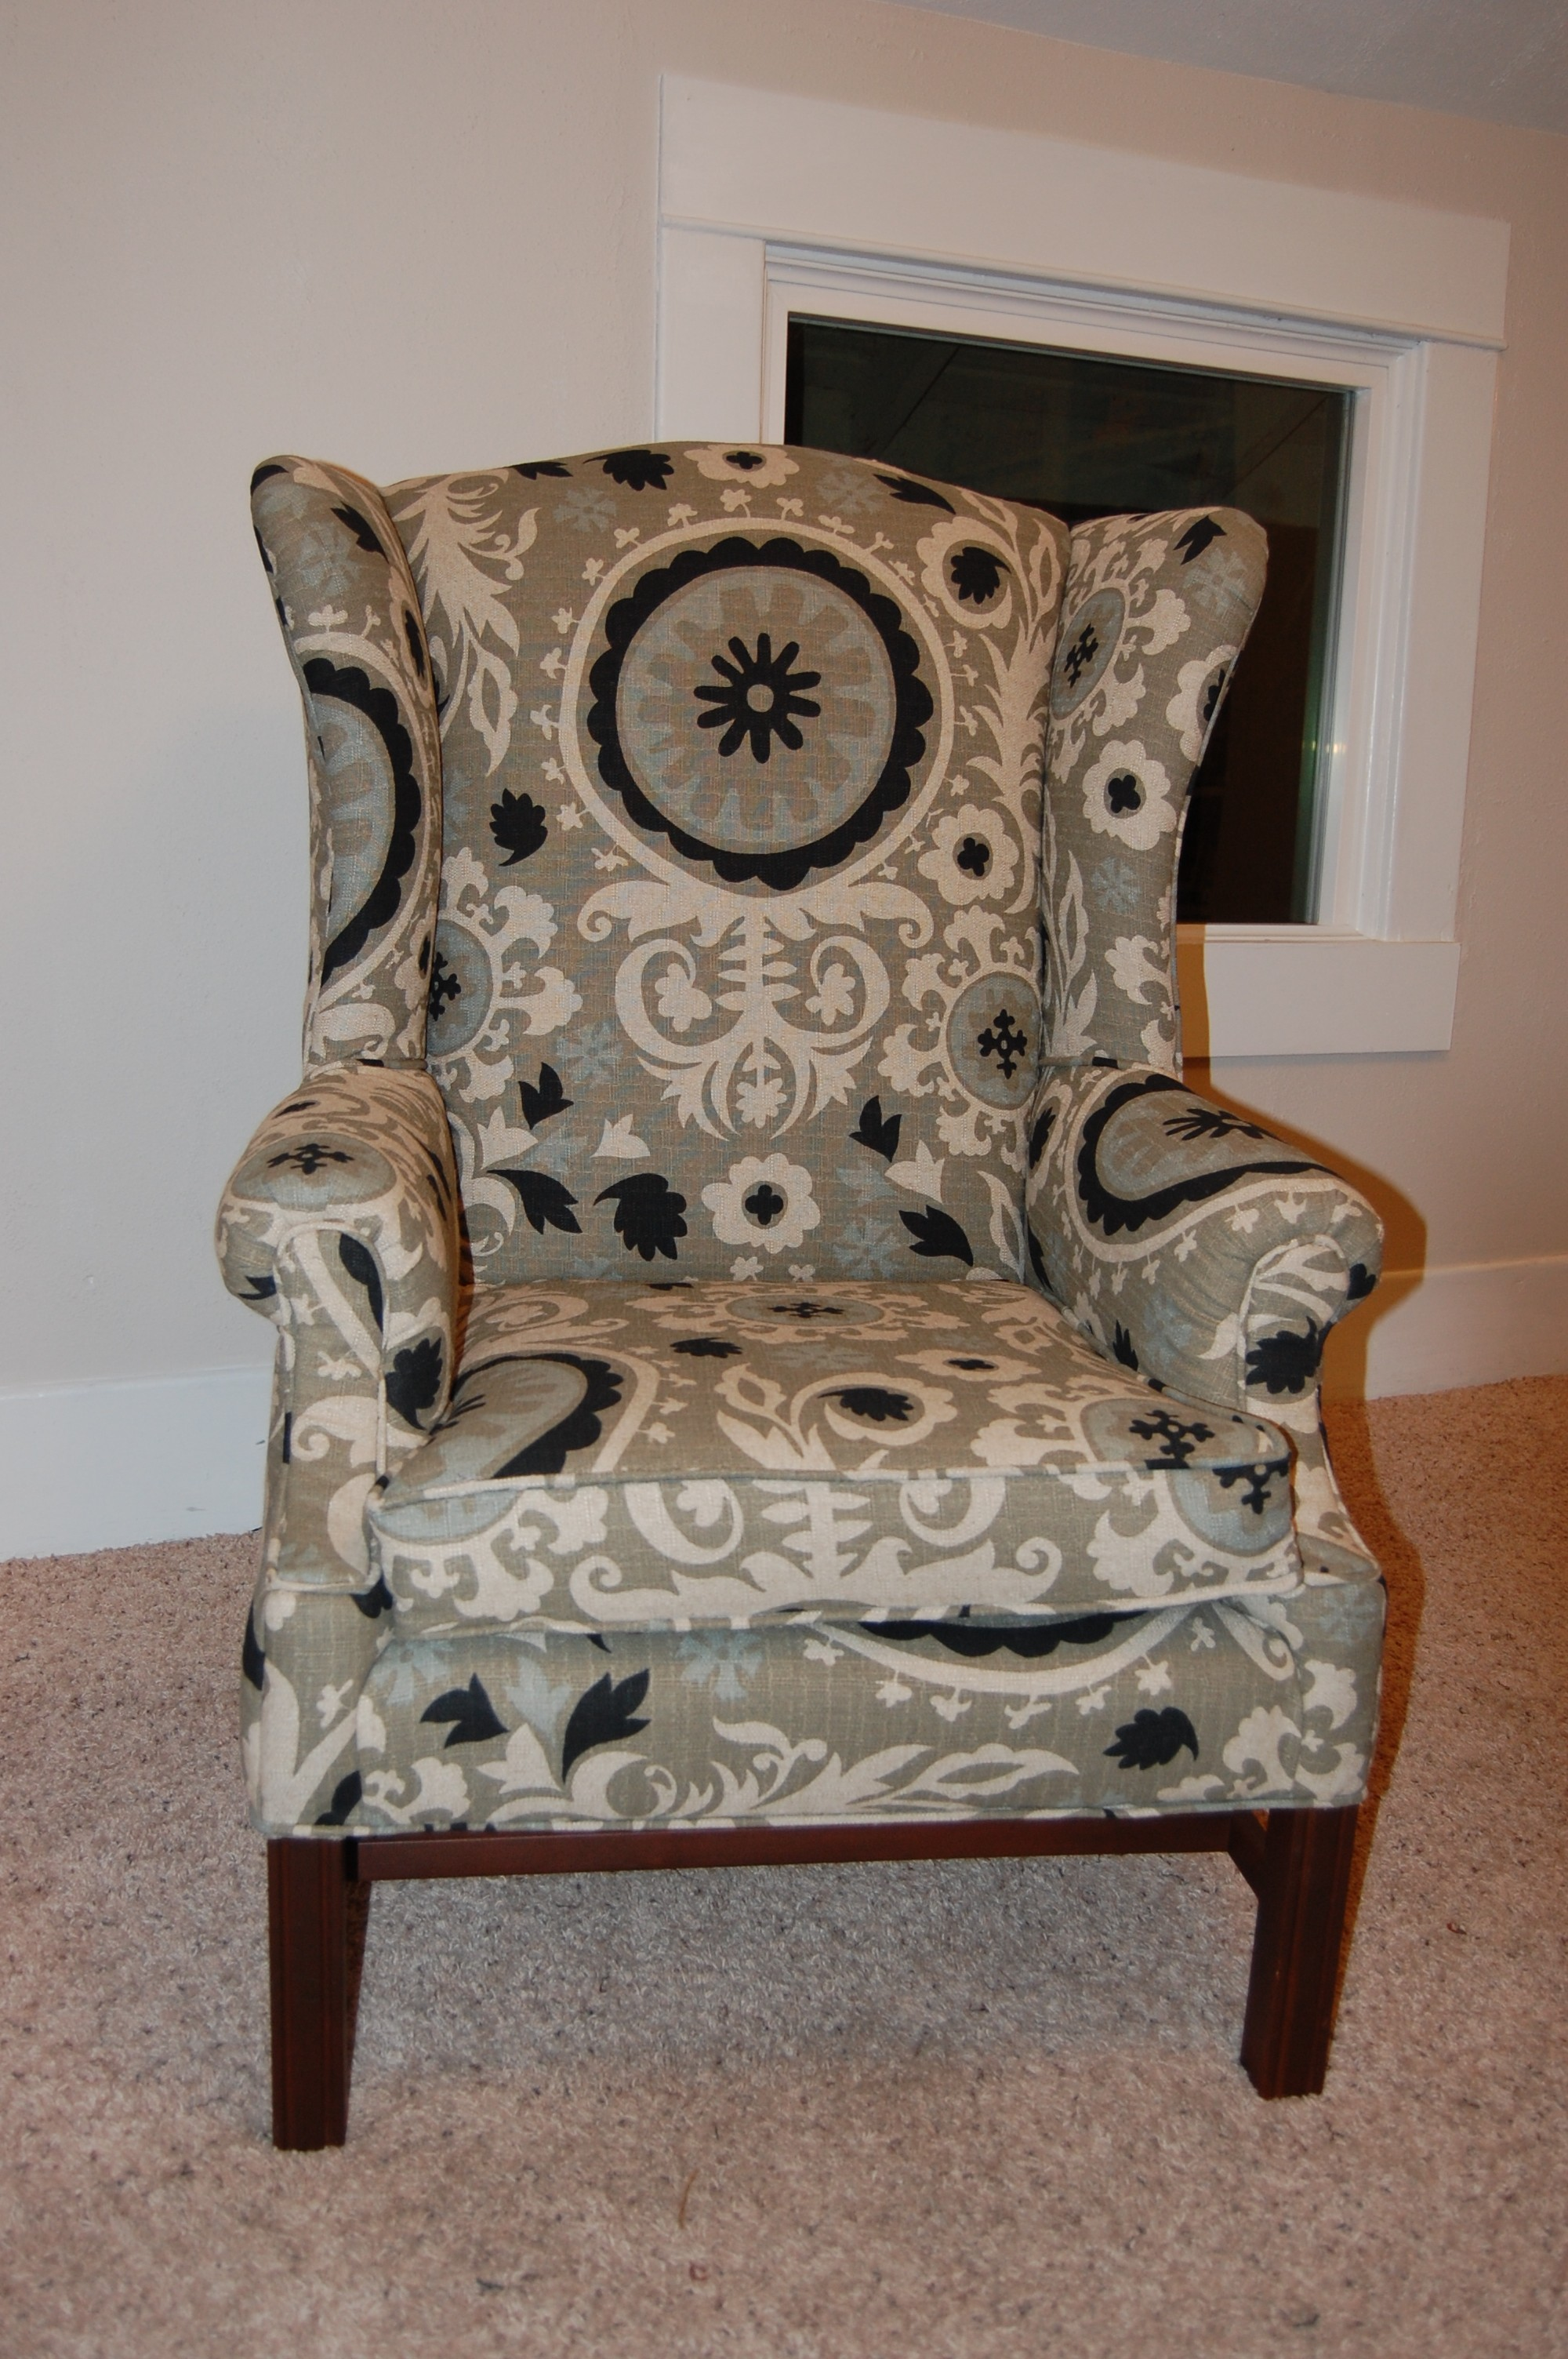 Artistic Reupholstering A Chair Ideas (Image 1 of 10)